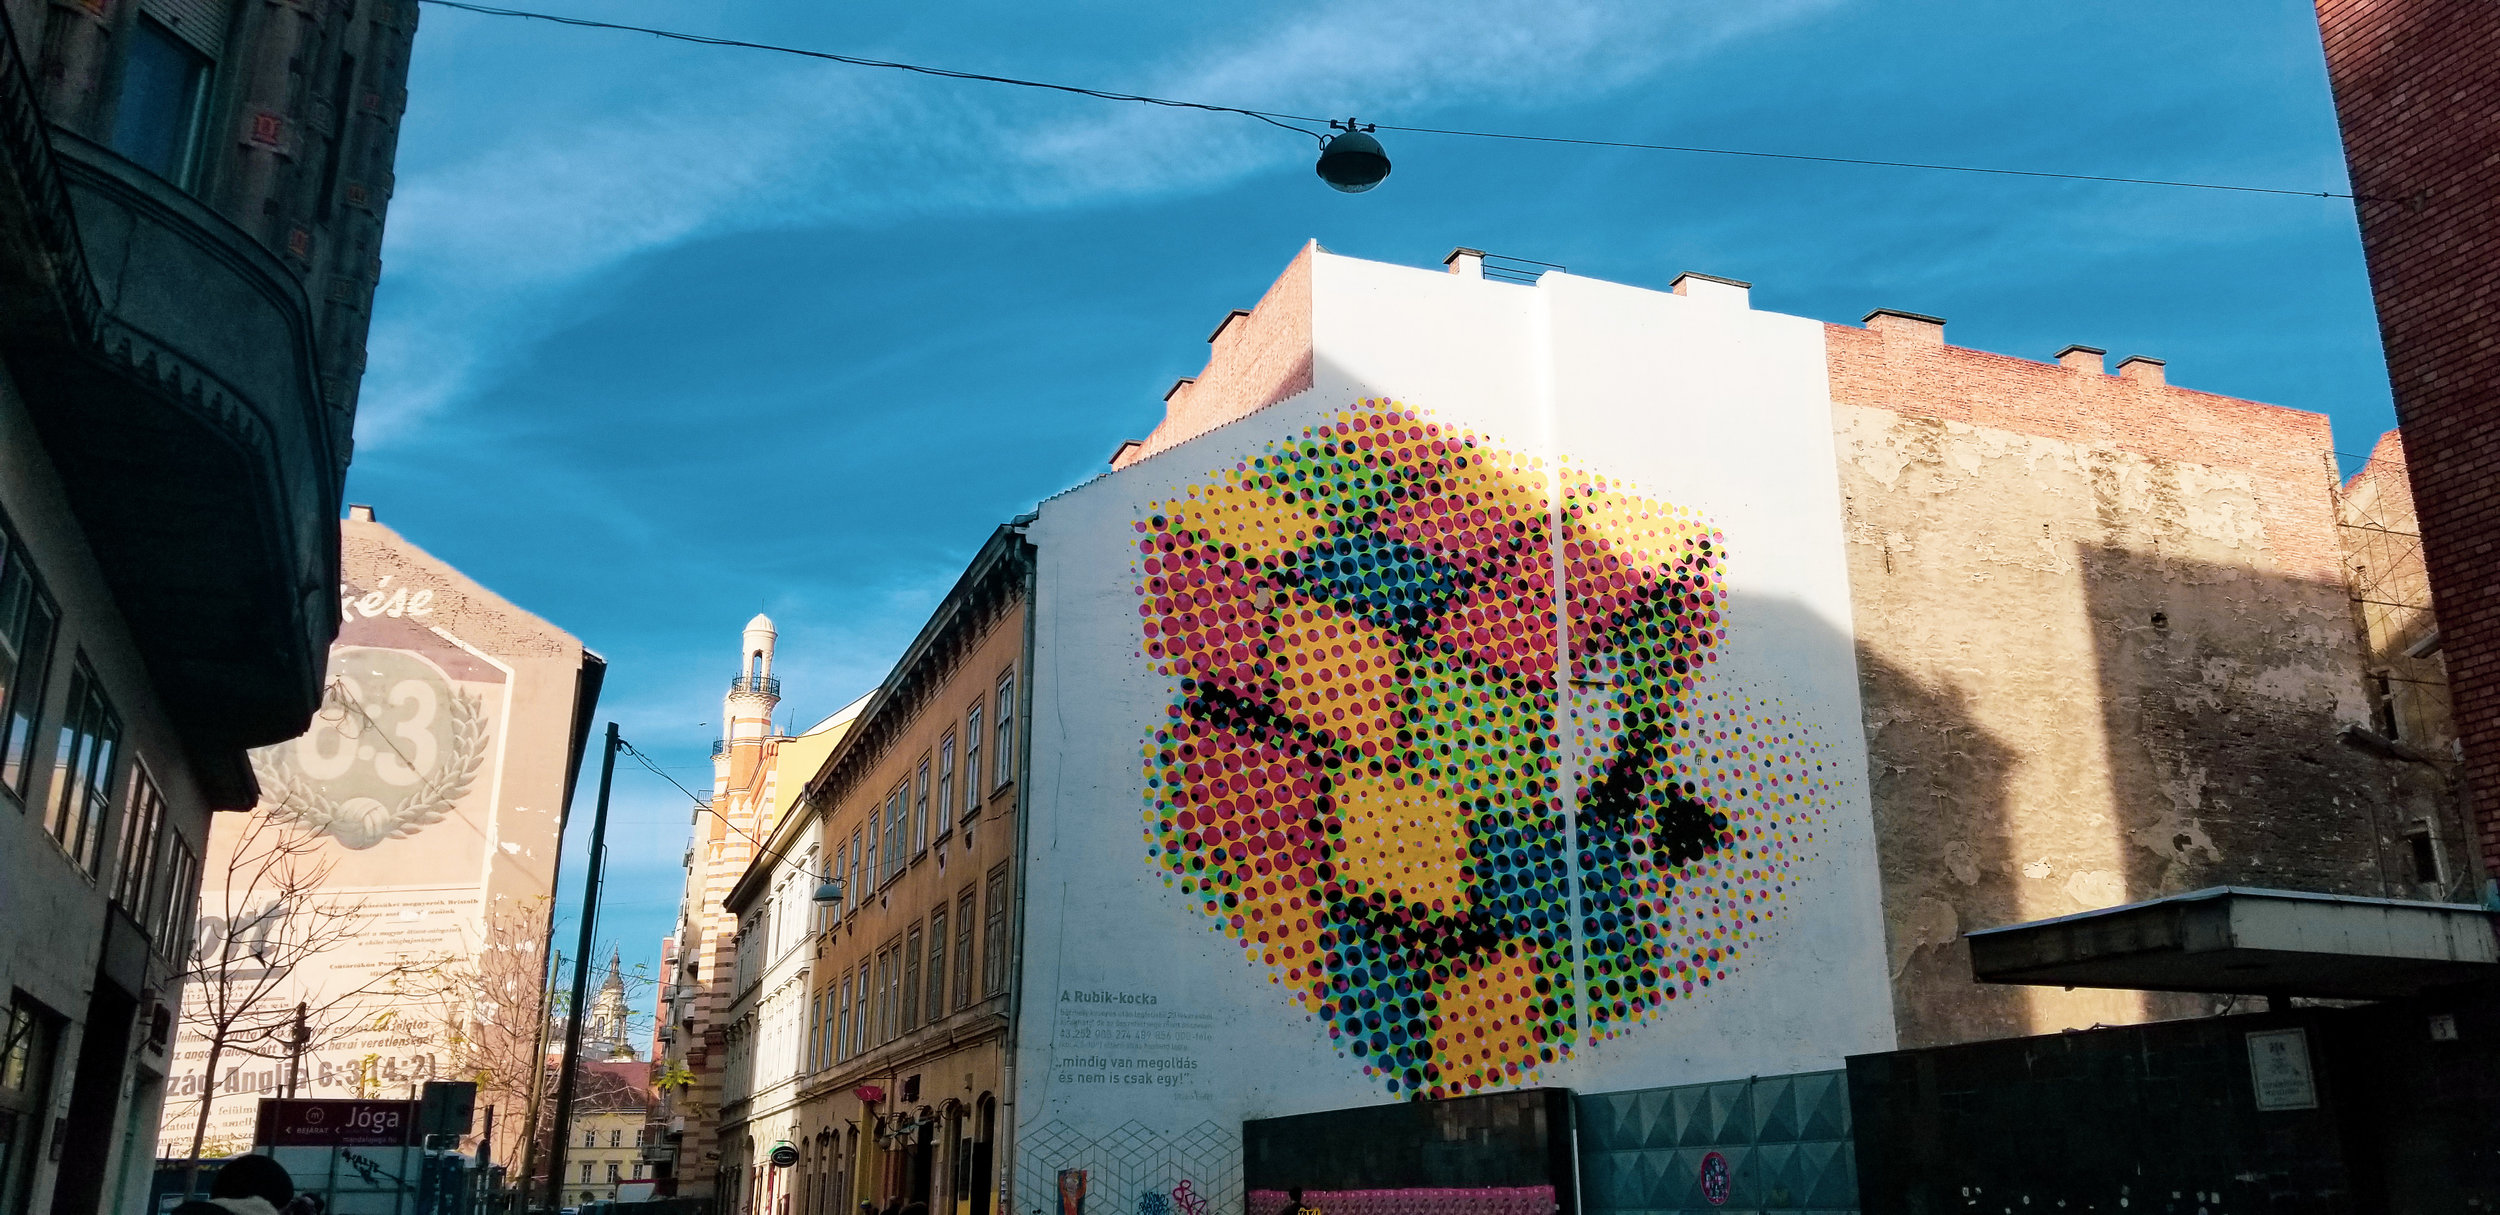 """The Rubik's Cube was invented by Hungarian Ernő Rubik. According to the artist, this mural reflects on the fact that in life """"there is always a solution – and not just one."""""""